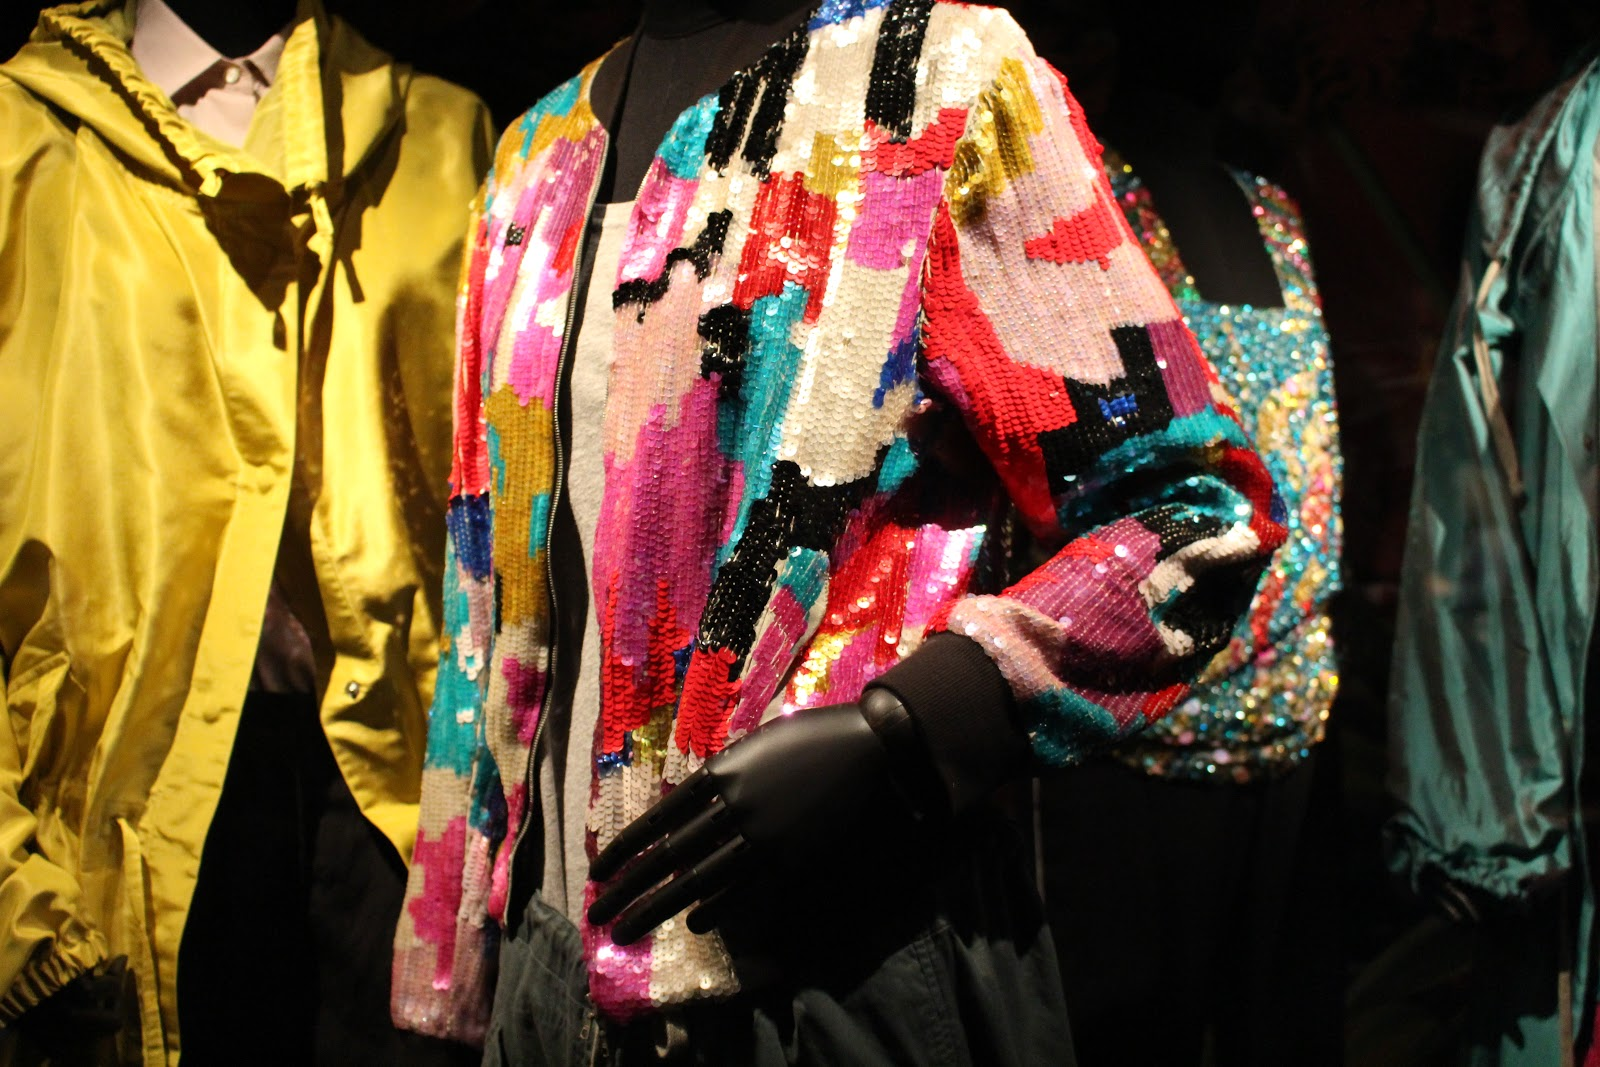 Dries Van Noten Inspirations MoMu